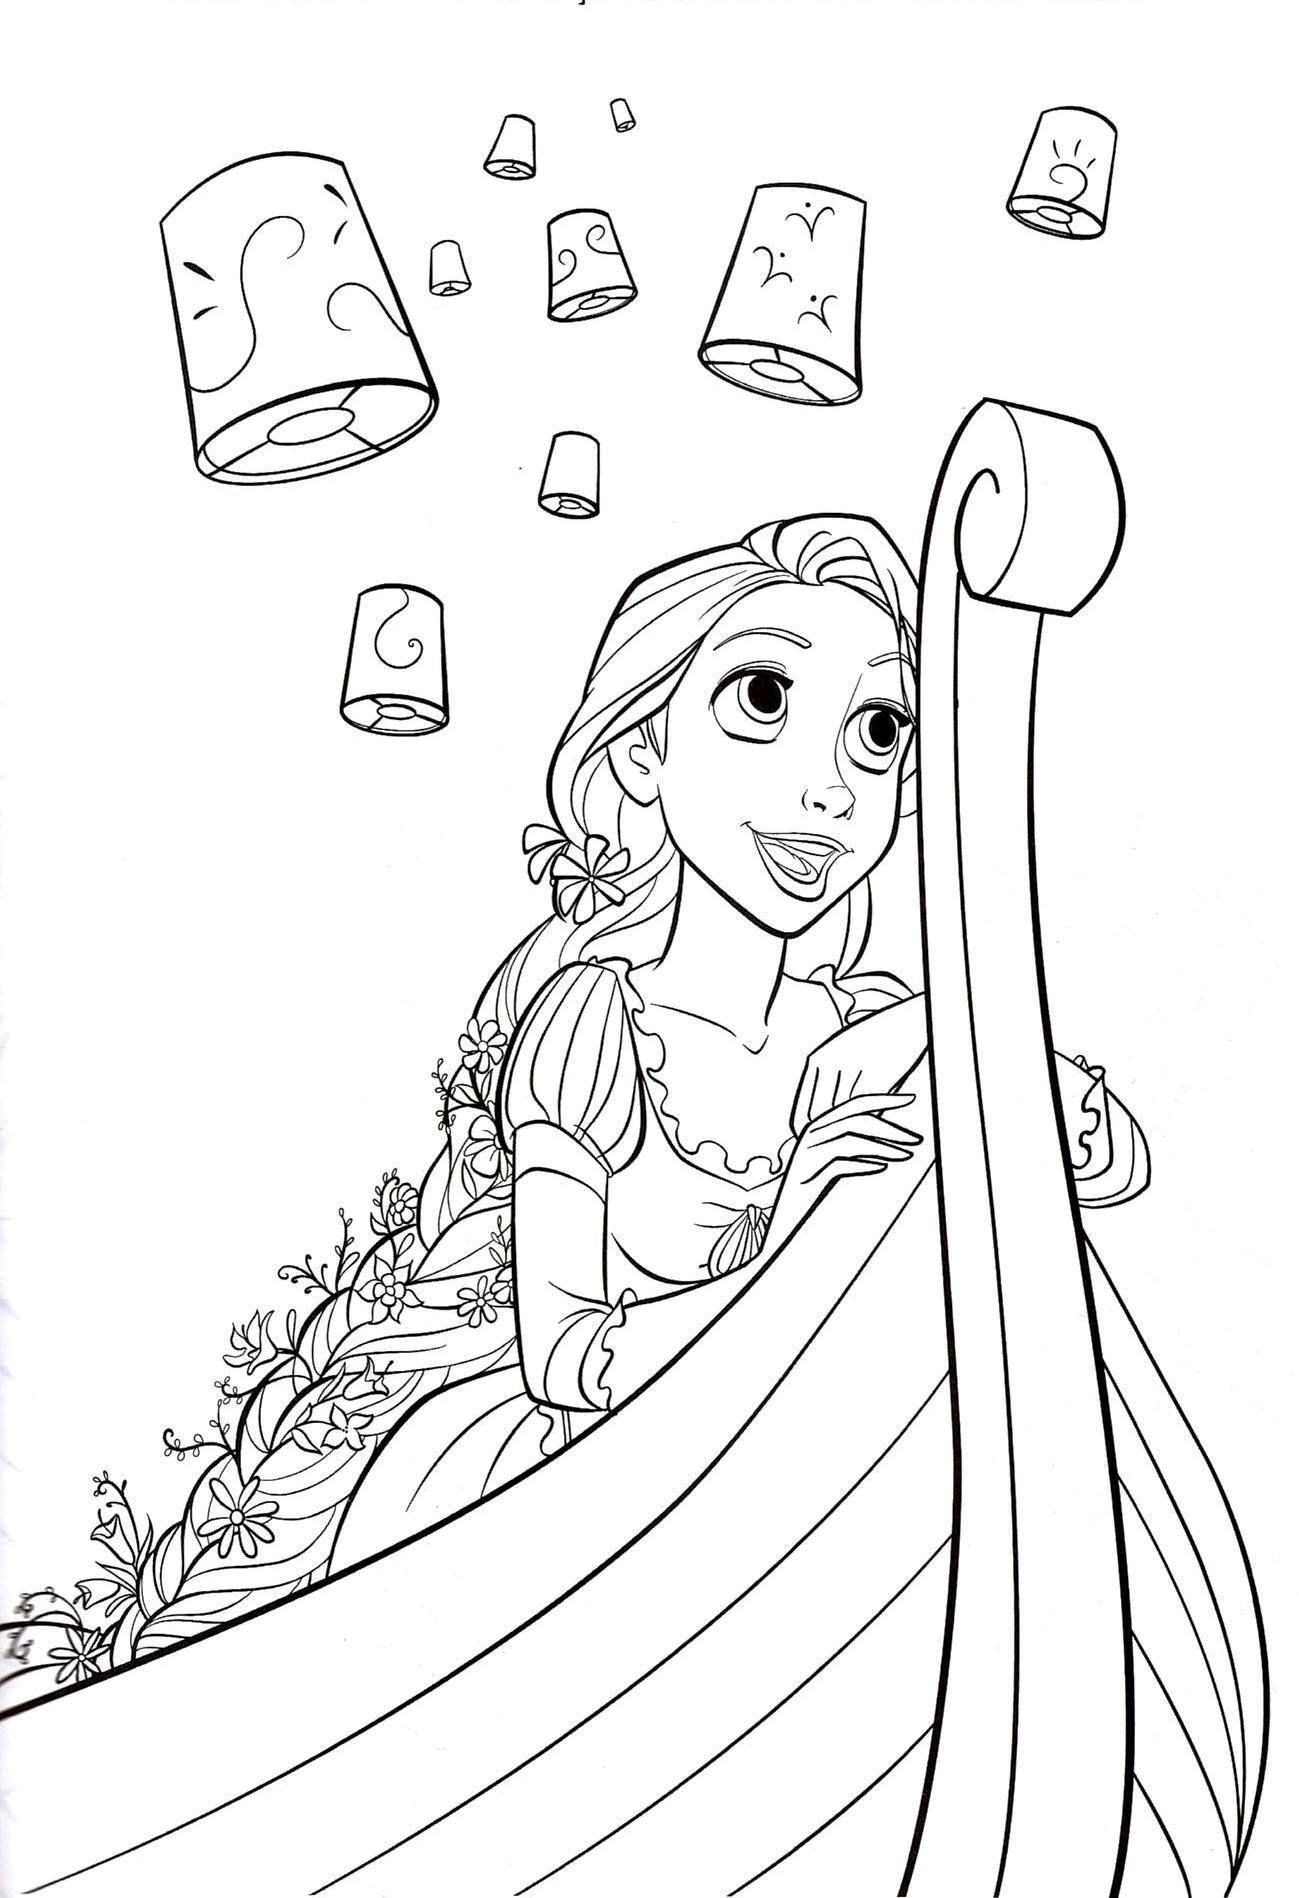 Disney Rapunzel Coloring Pages Free Printable Disney Princess Tangled Rapunzel Colouring P Princesa Para Pintar Colorear Princesas Imagenes Para Colorear Ninos